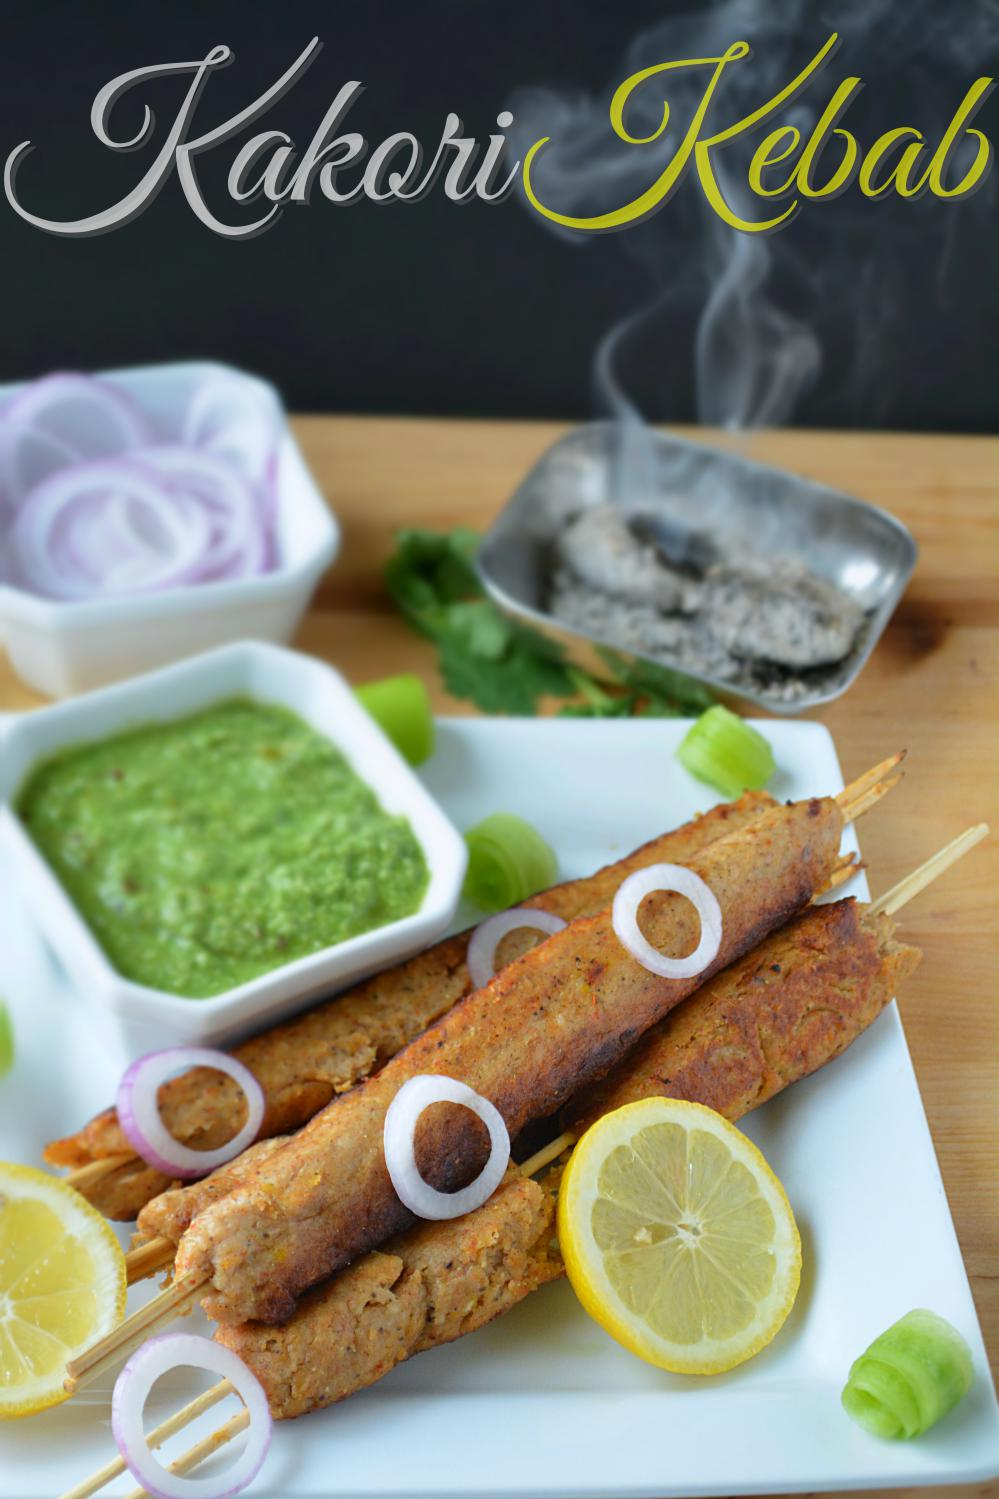 kakori_kebab_recipe_2